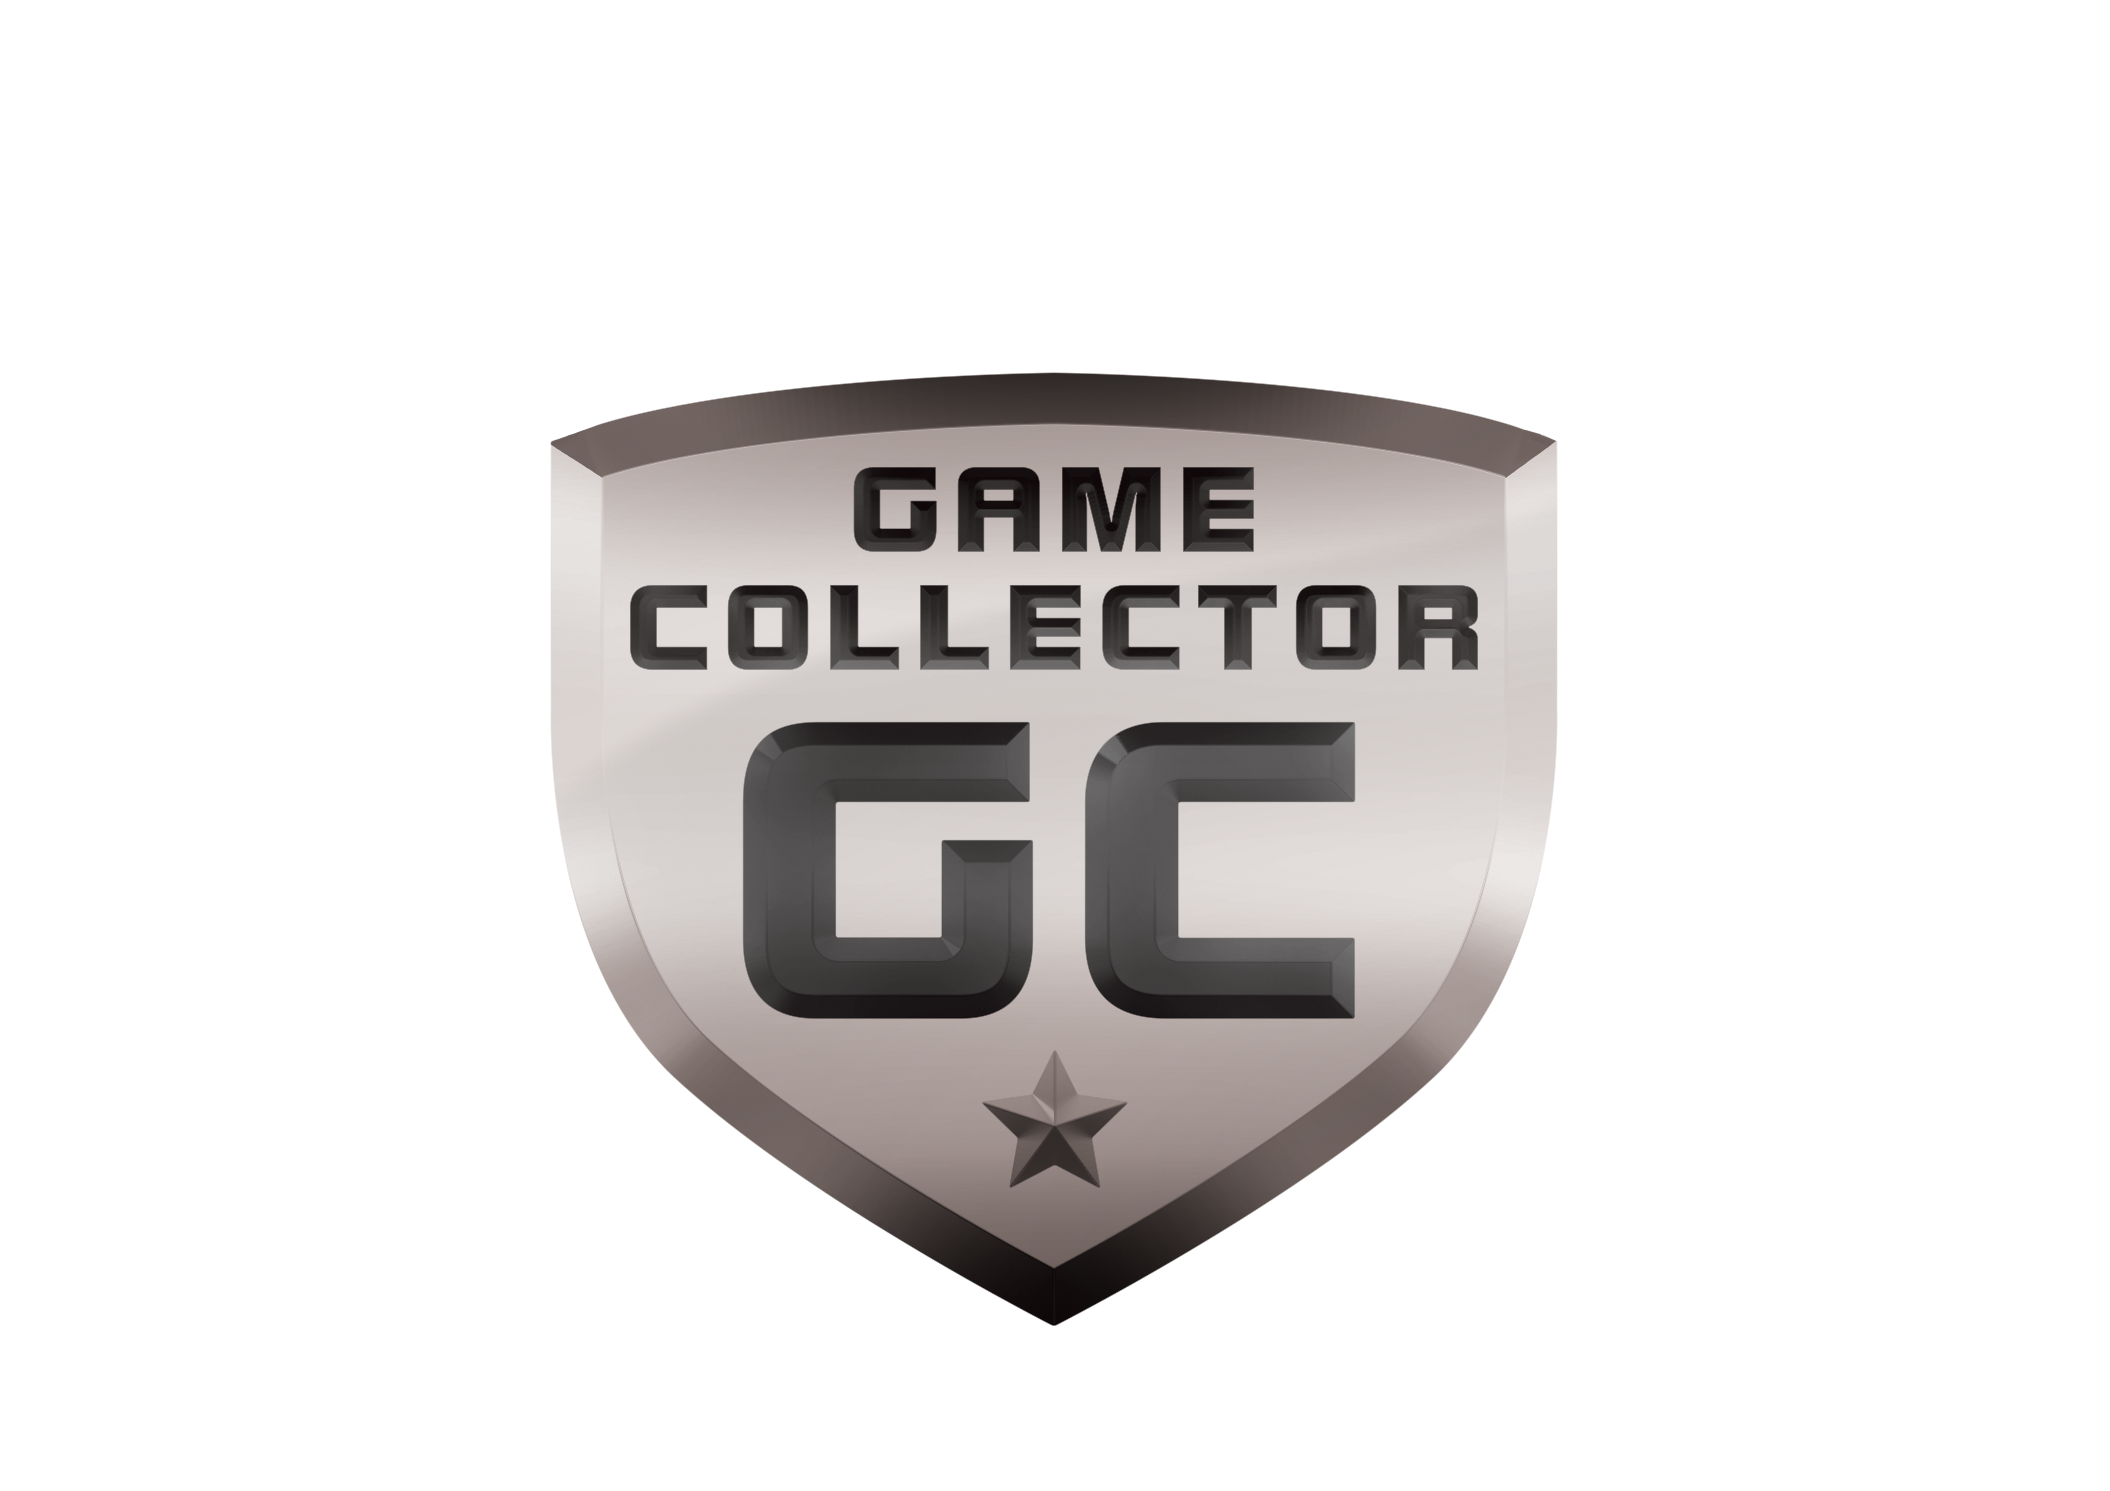 https://prismic-io.s3.amazonaws.com/fanatical/9a0f3fbd-0543-4eb3-bbb9-206eb225f28a_GameCollectorBadge-2-COLLECTOR+%281%29.png